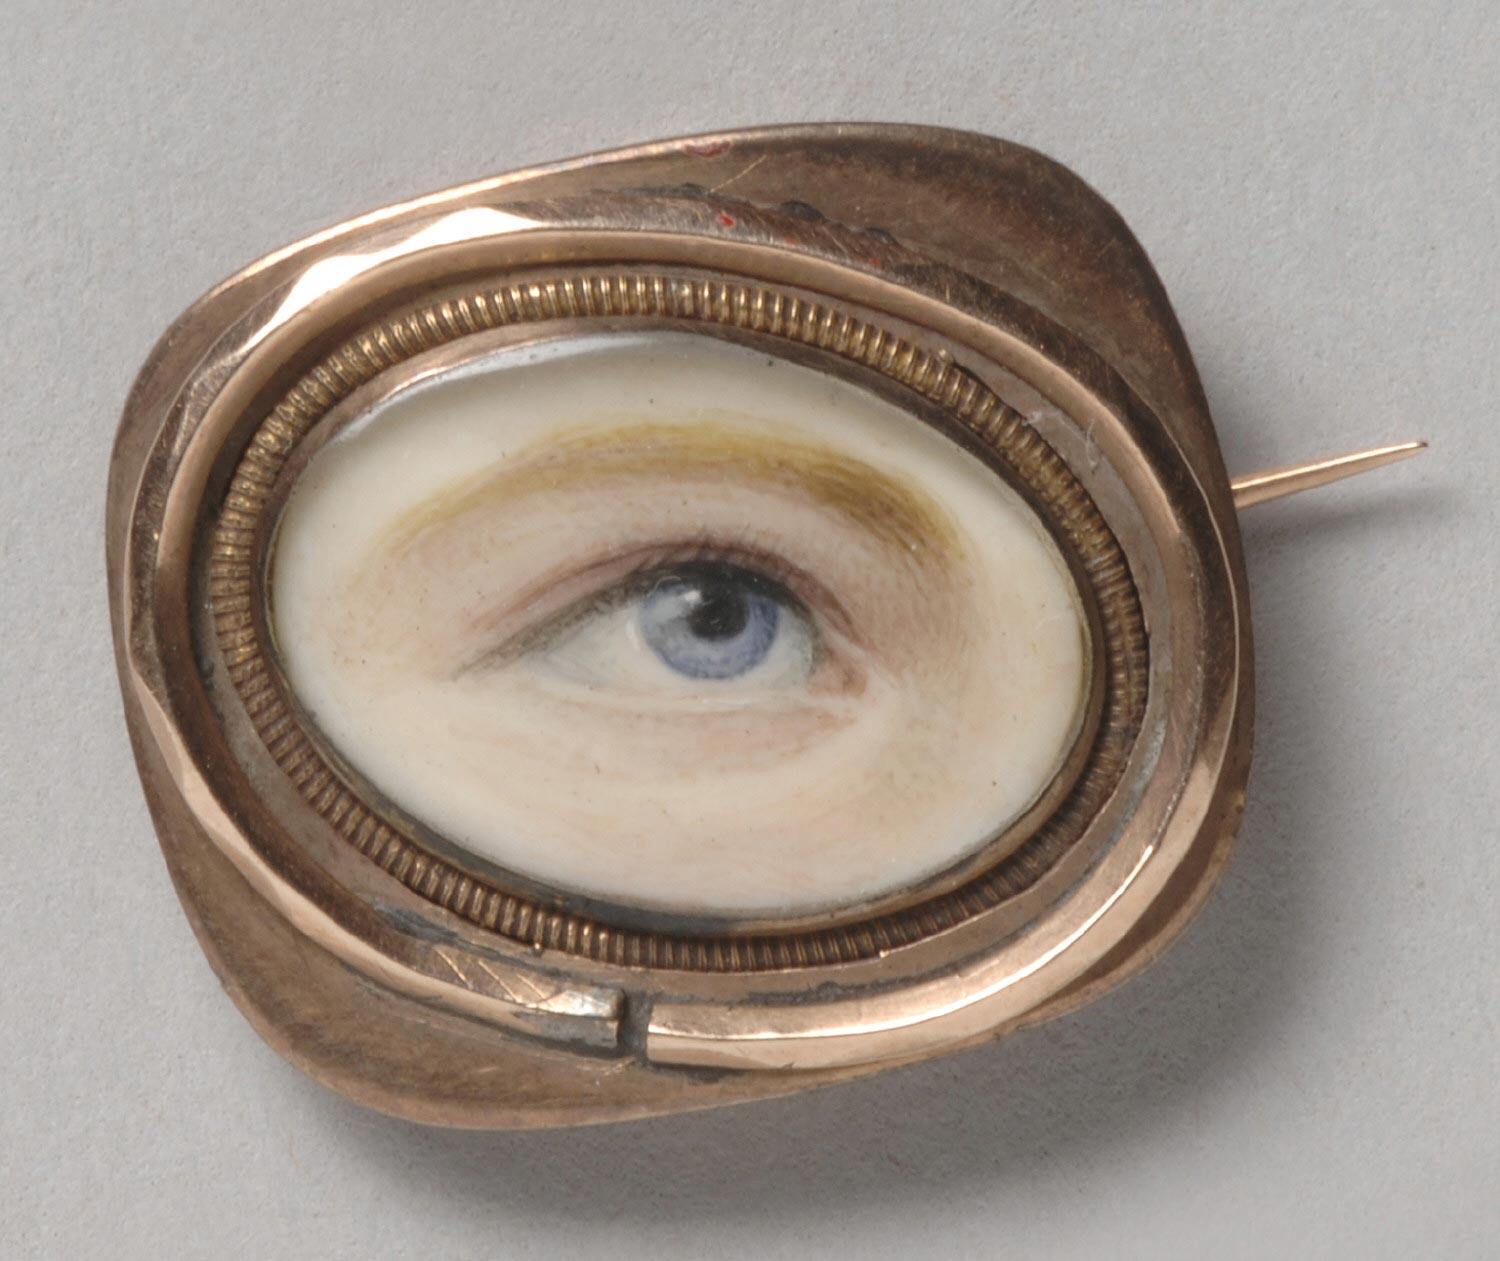 Portrait of a Right Eye